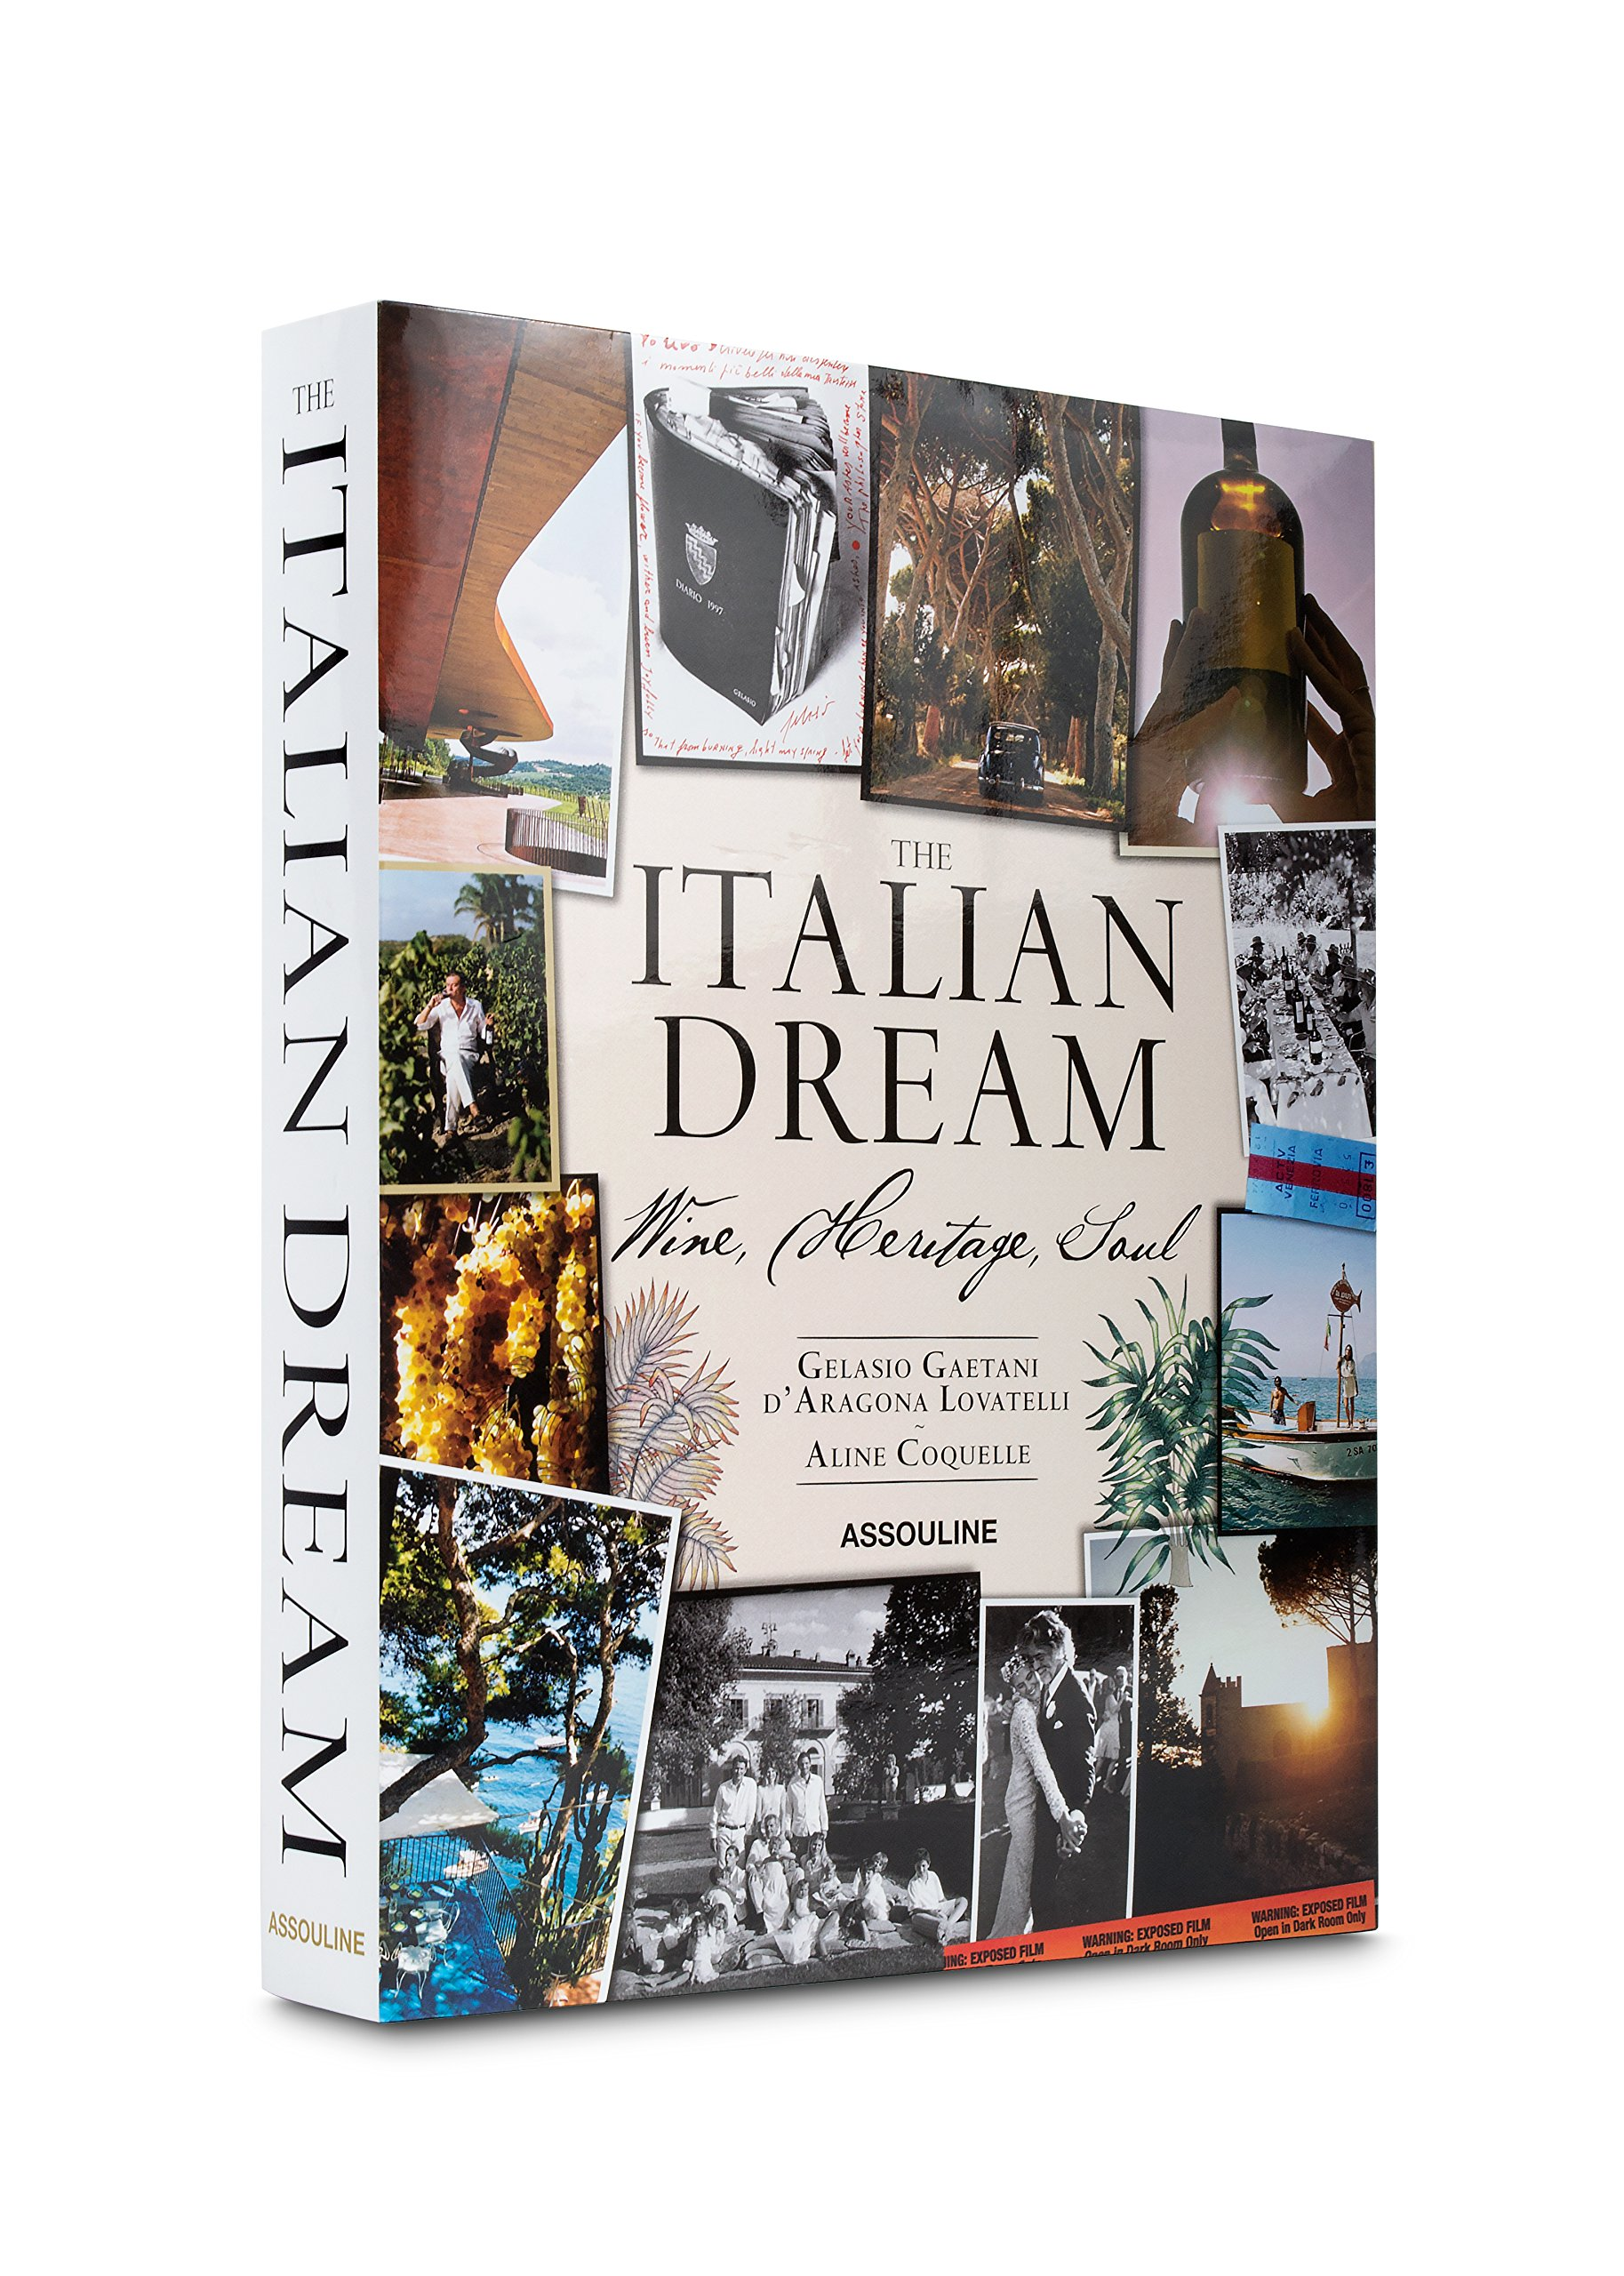 The Italian Dream: Wine, Heritage, Soul (Classics)